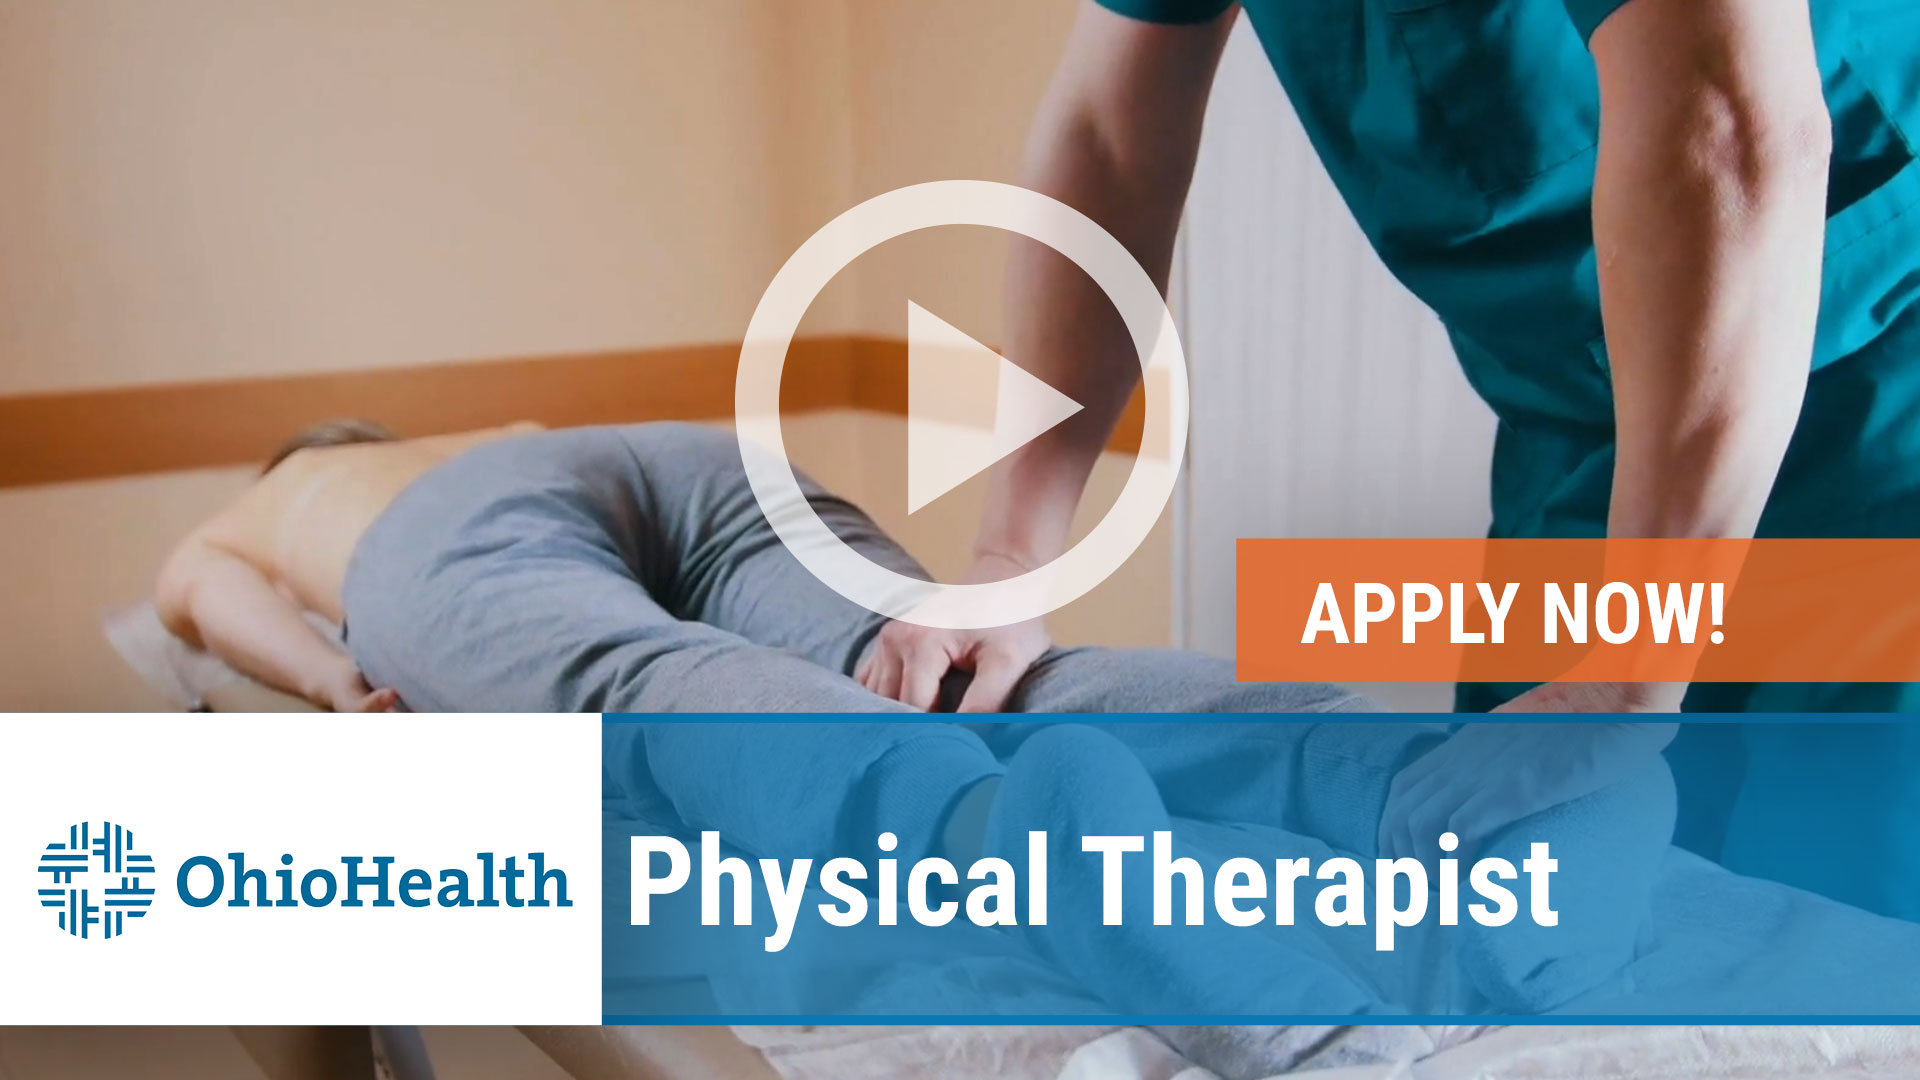 Watch our careers video for available job opening Physical Therapist in Dublin, Ohio